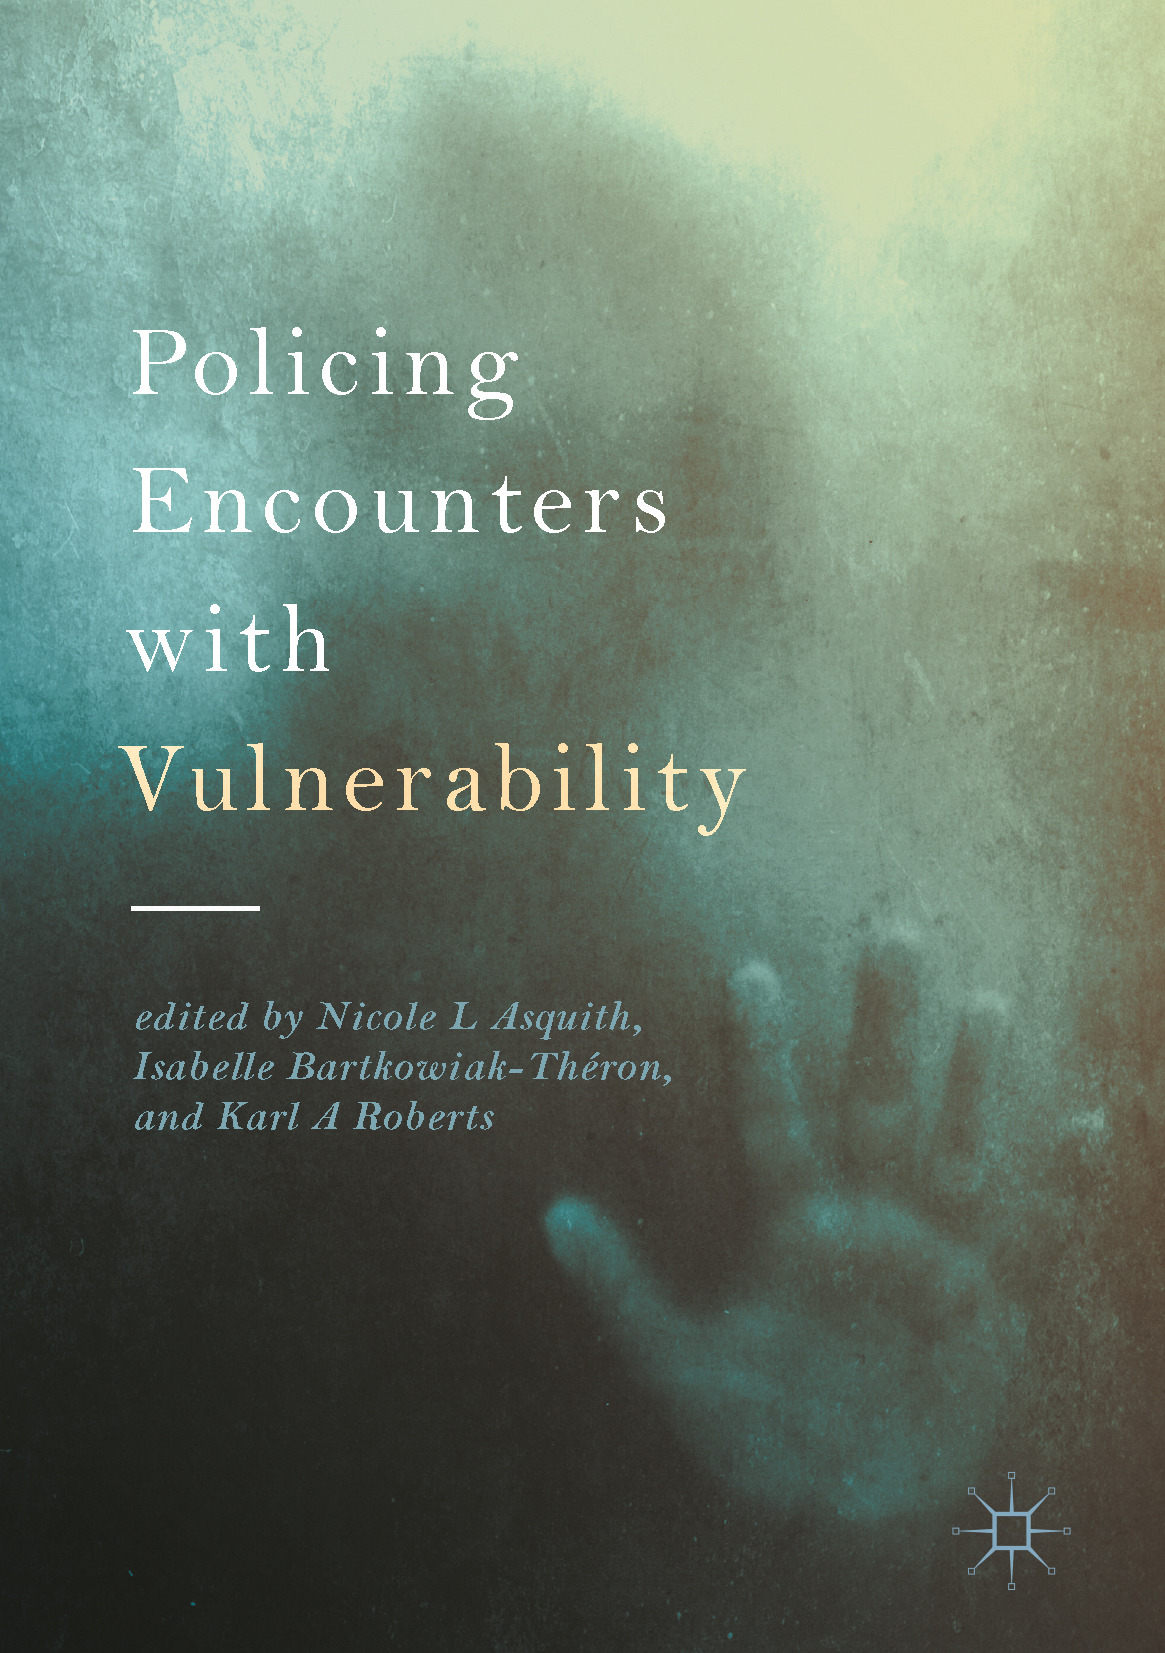 Asquith, Nicole L - Policing Encounters with Vulnerability, ebook